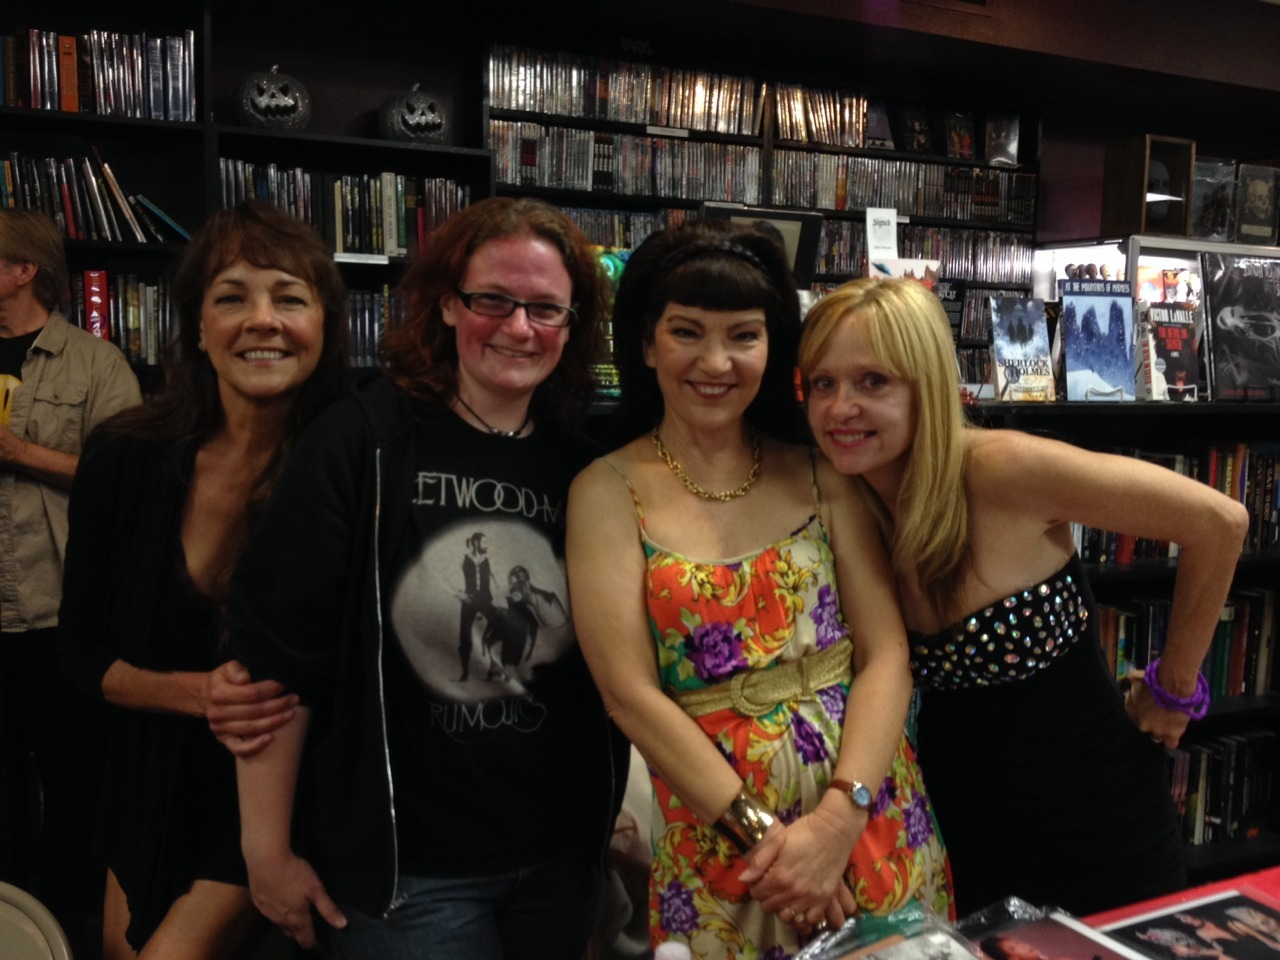 Got to see Brinke and Linnea, and meet Michelle Bauer, yesterday at Dark Delicacies in Burbank! Yay!